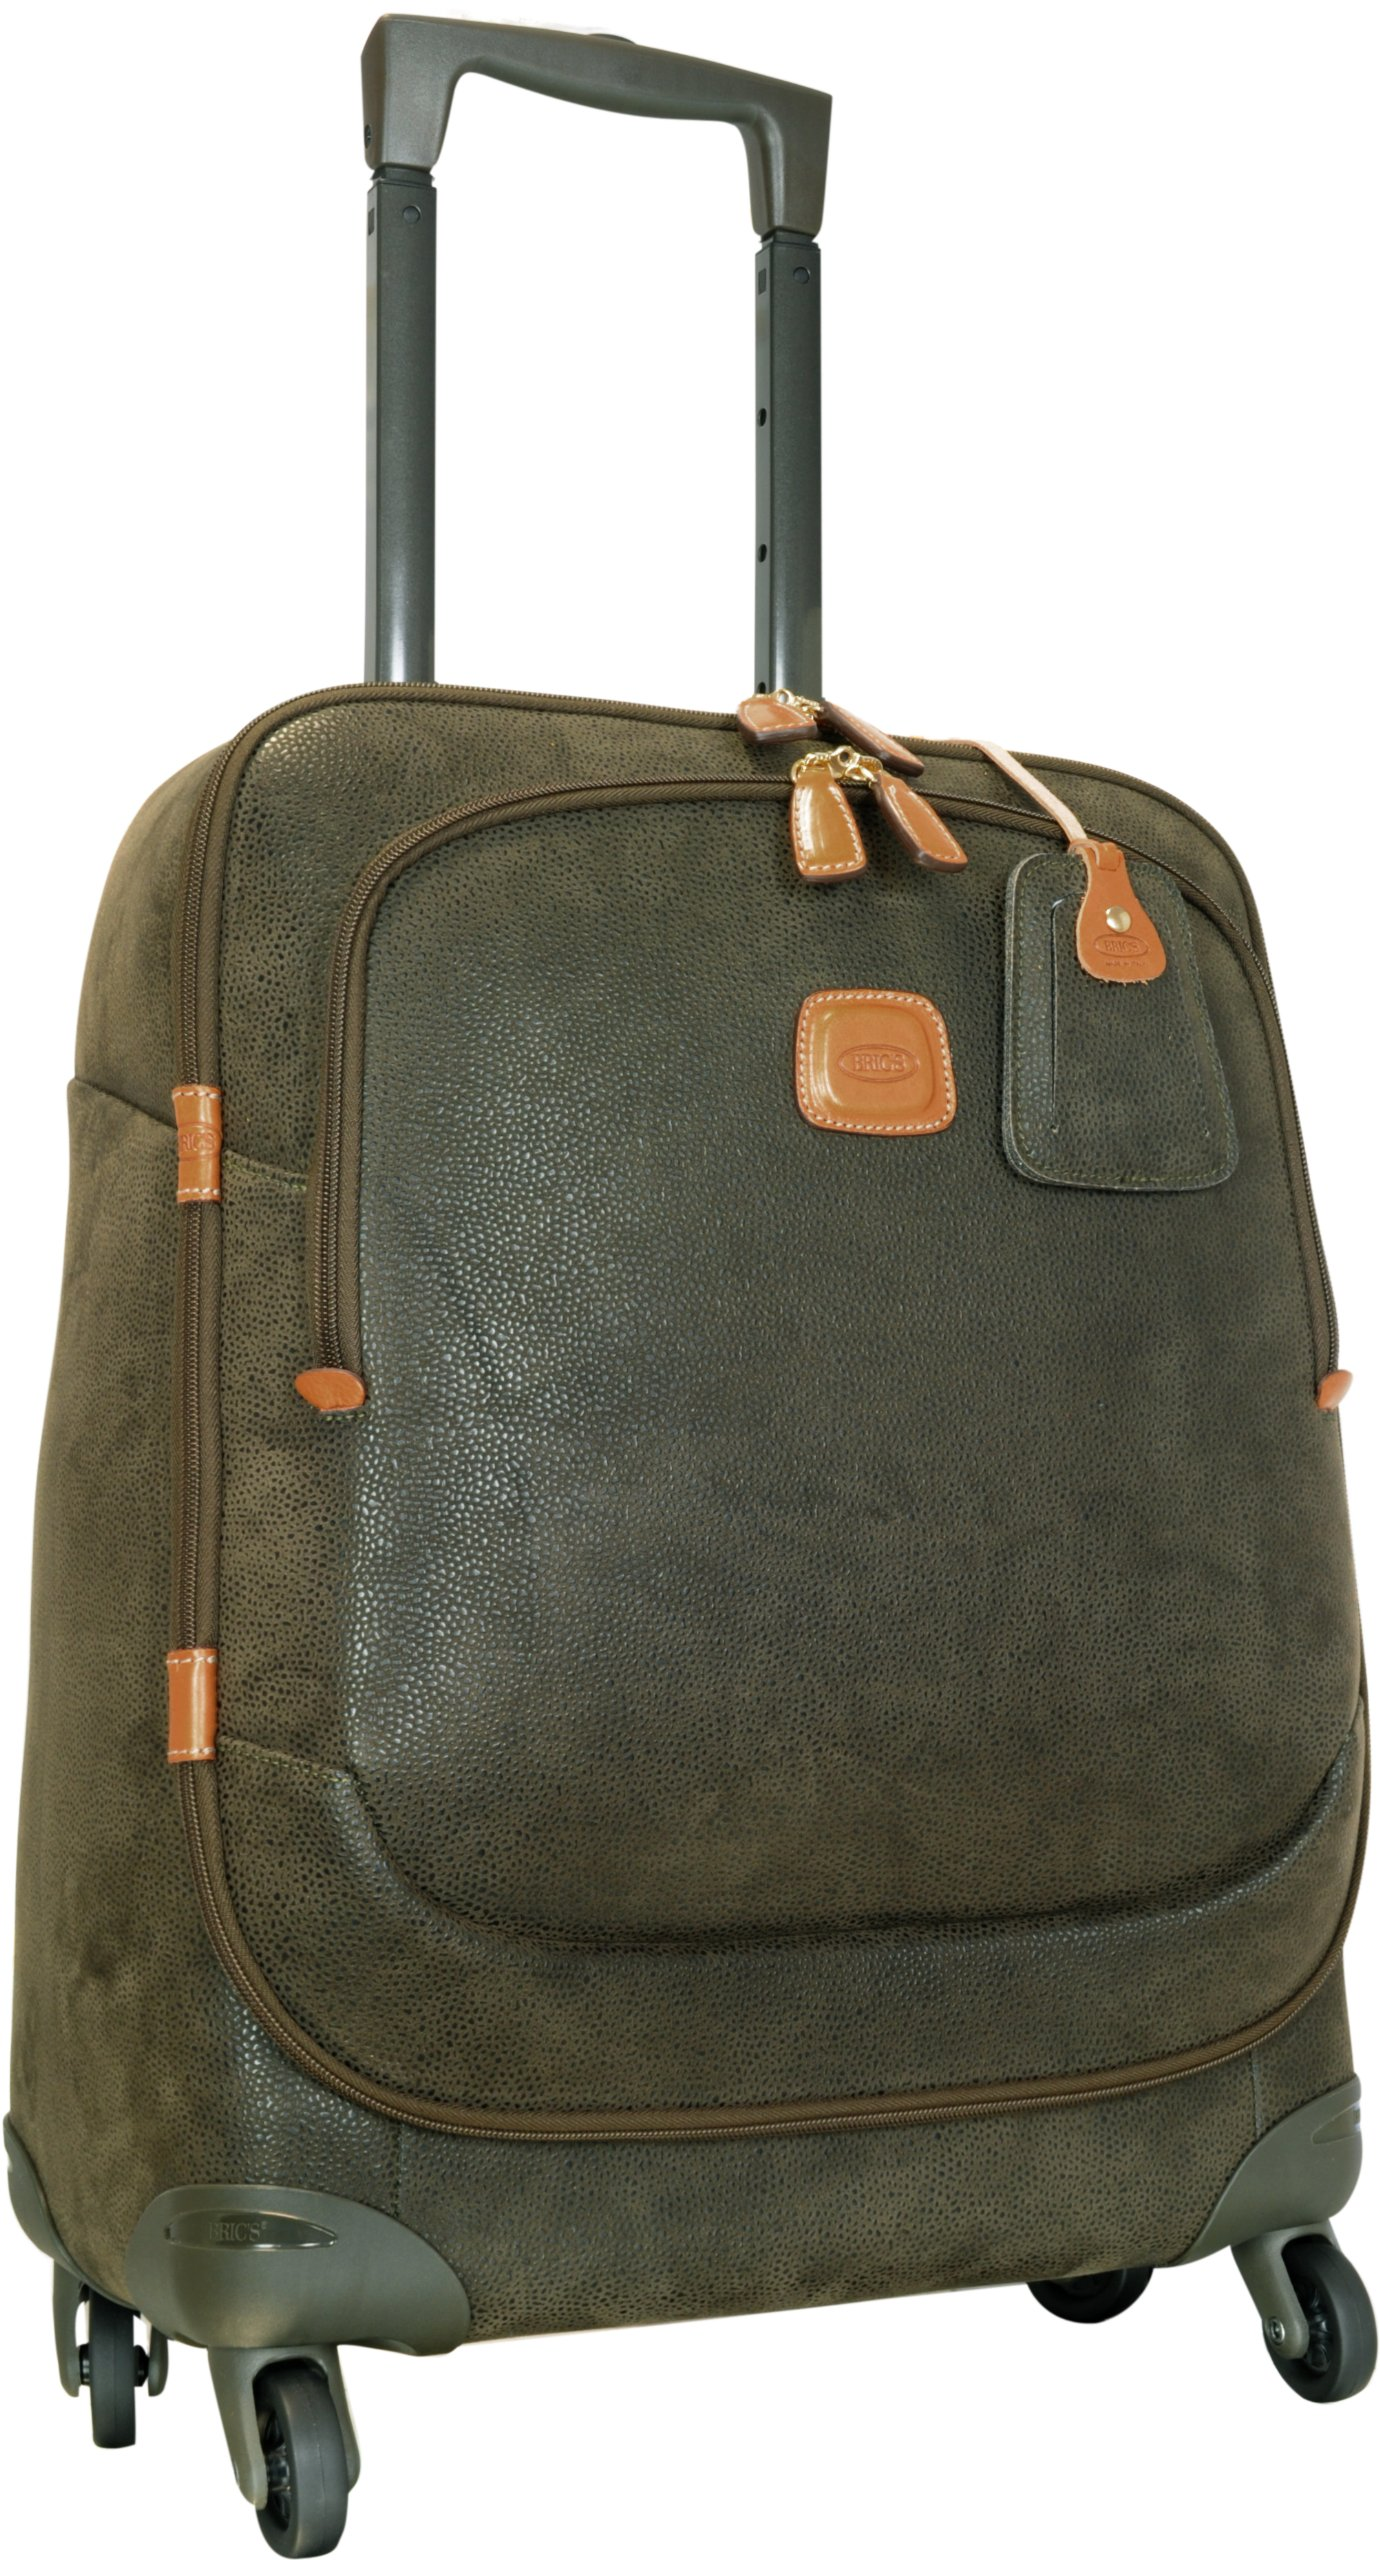 Bric's Luggage Life 21 Inch Carry On Spinner, Olive, One Size